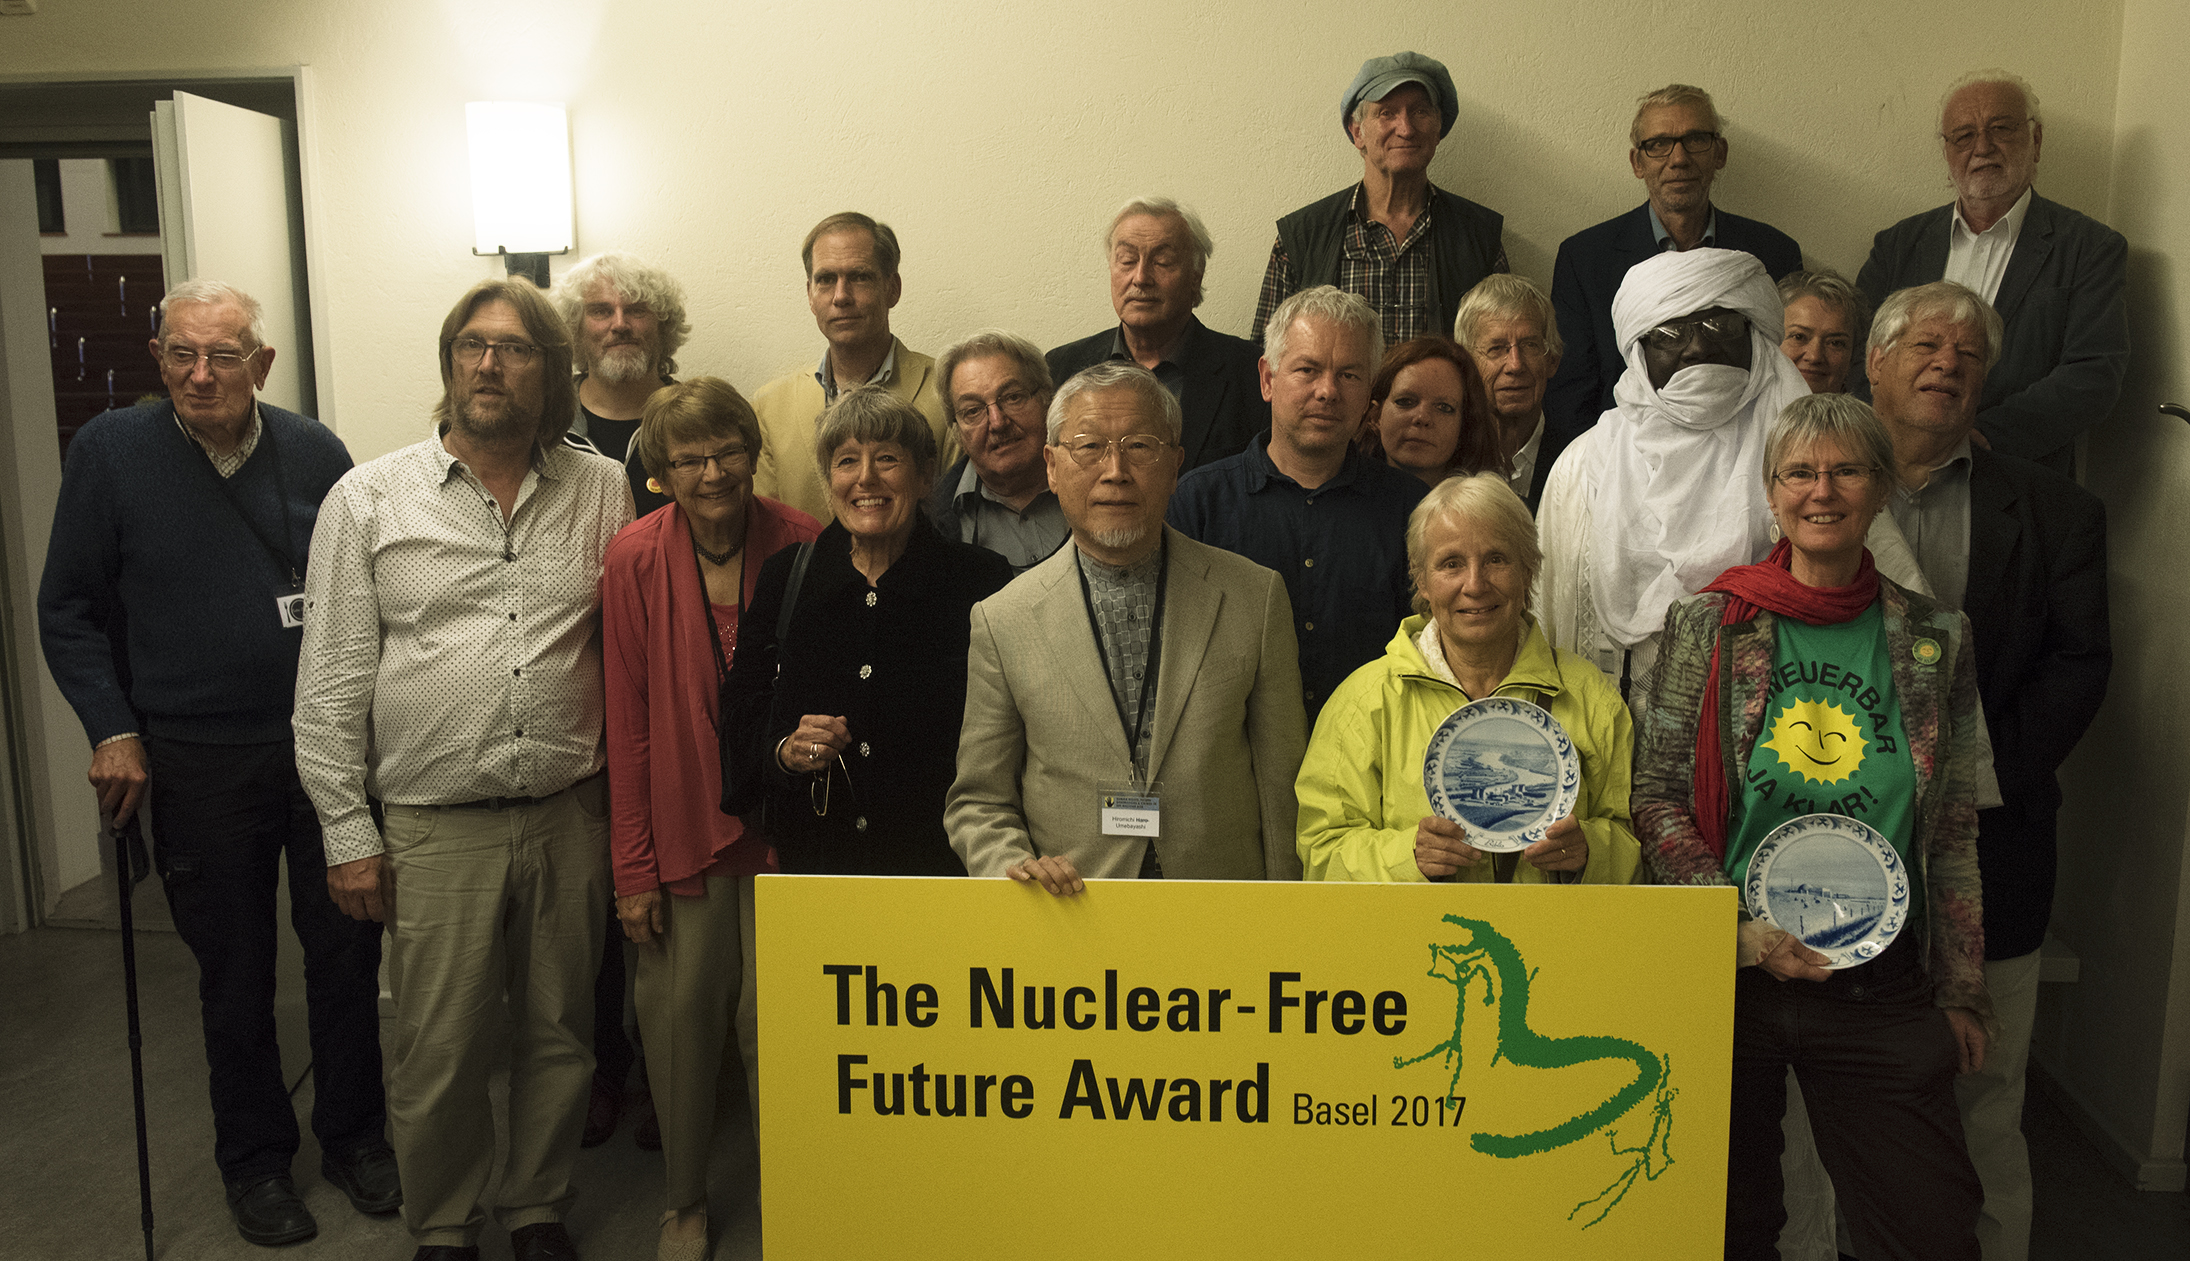 Preistraeger 2017 Basel The Nuclear Free Future Award